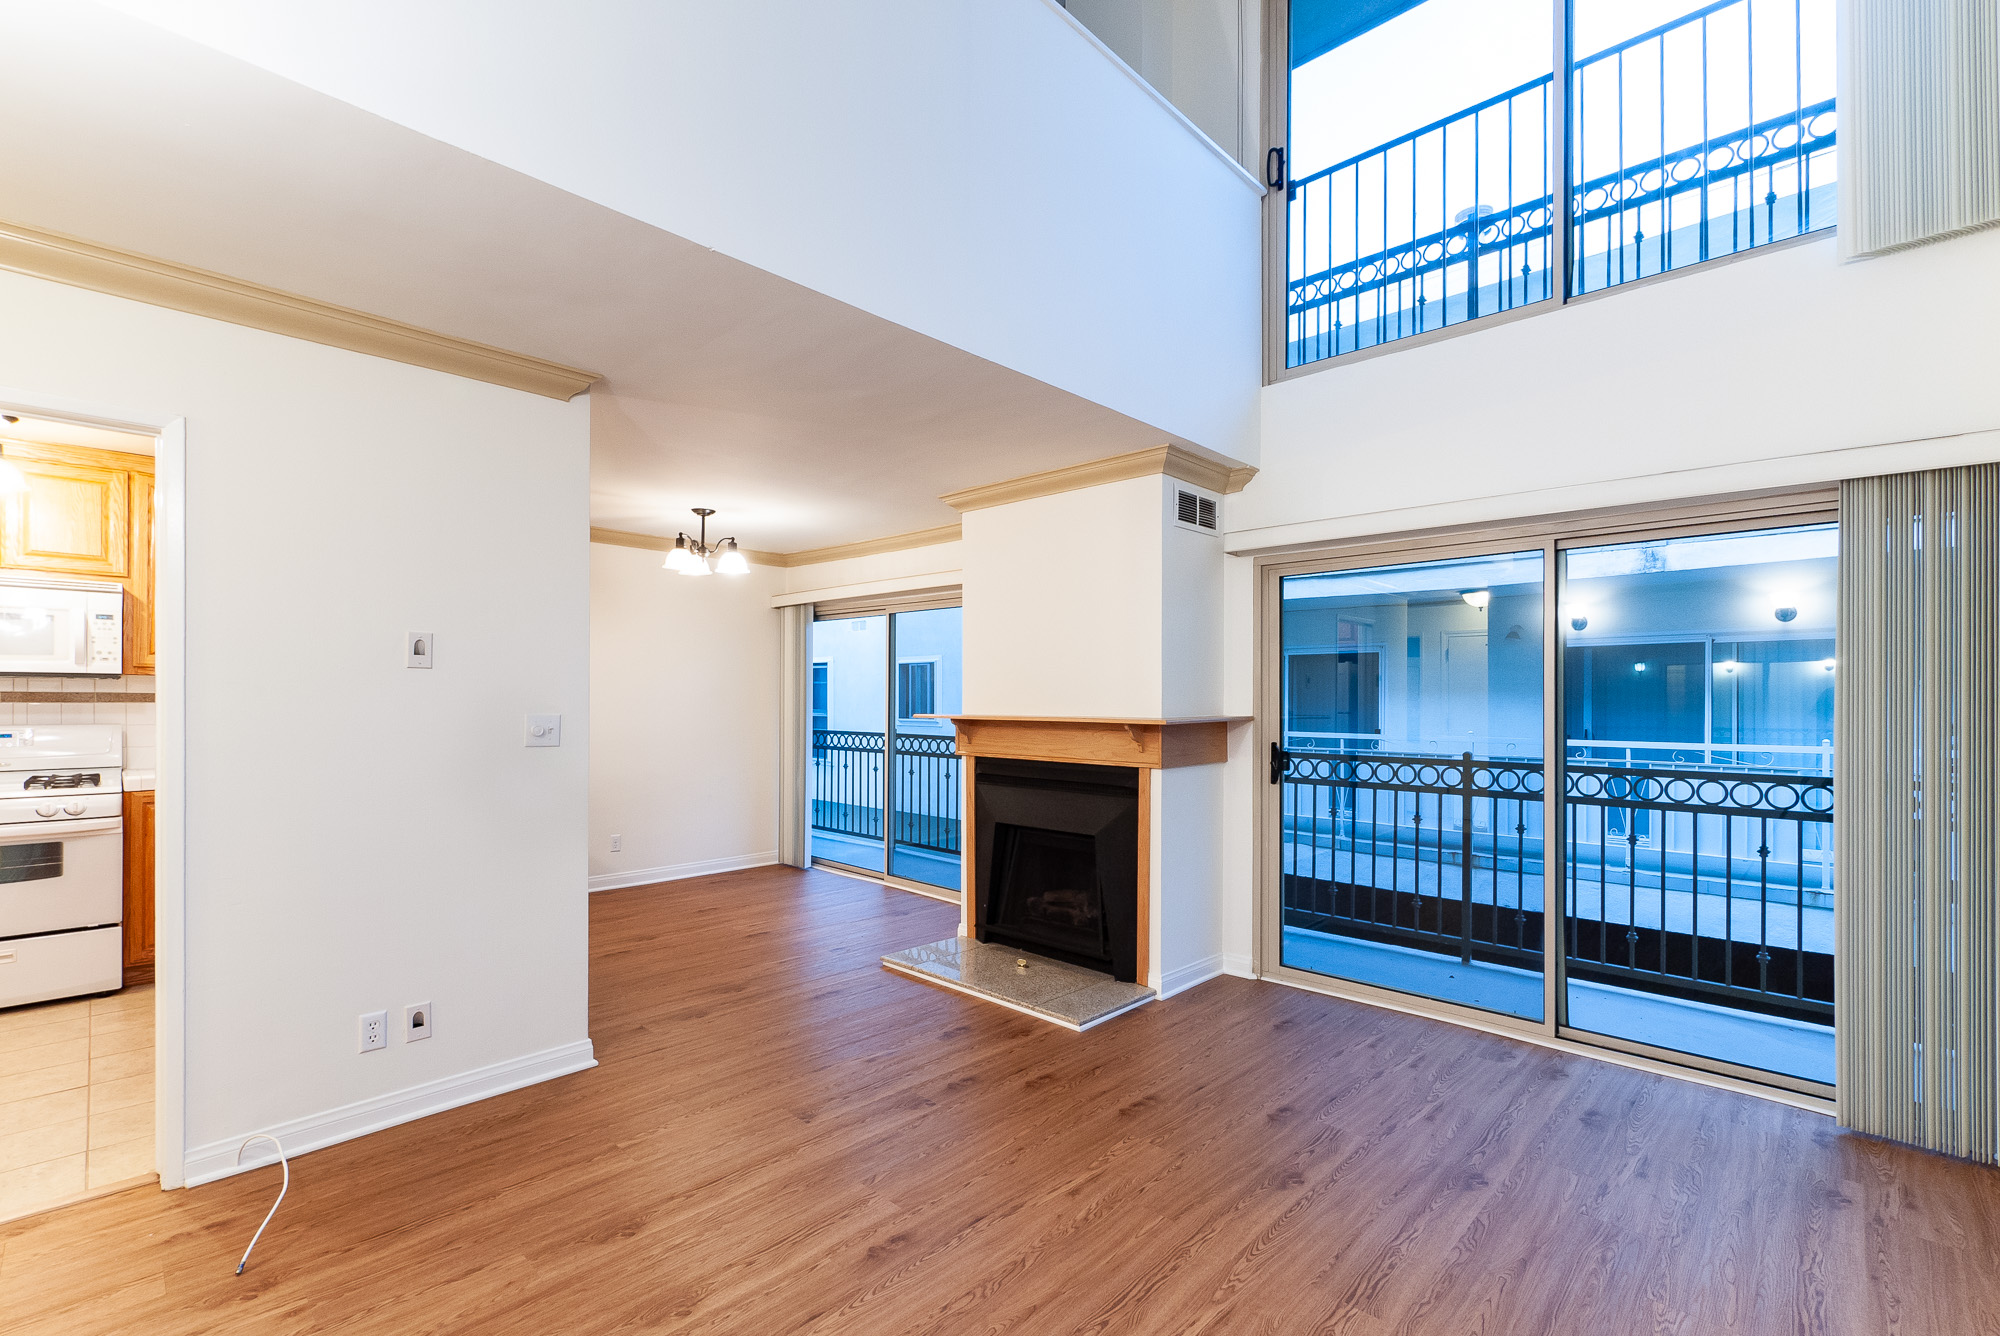 Two Story Townhouse - Loft Bedroom - W/D in Unit - Secluded and Quiet Community